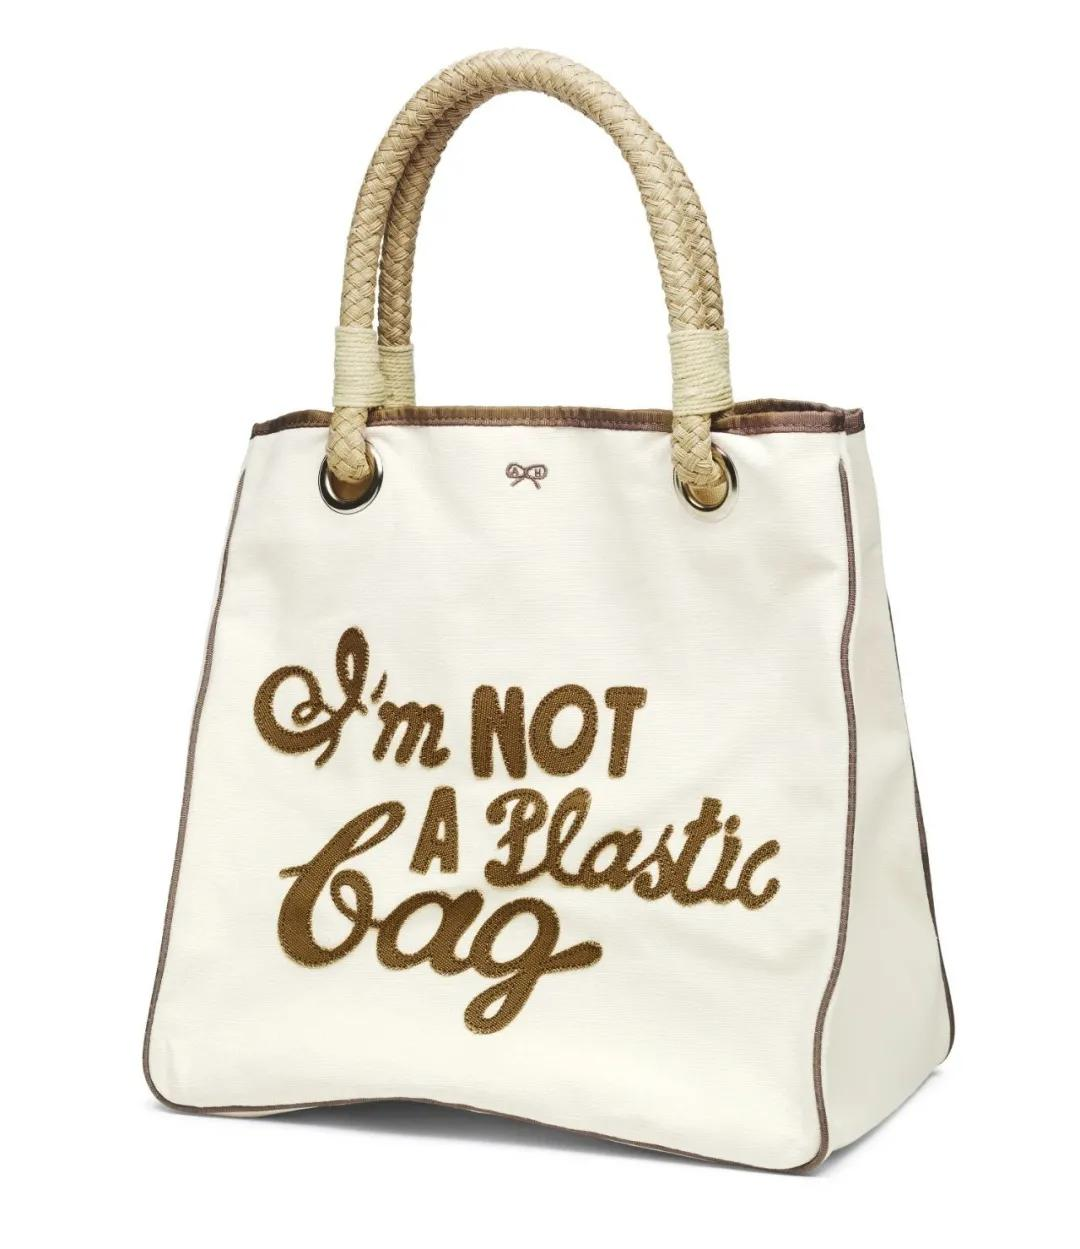 Anya Hindmarch and We Are What We Do, 'I'm NOT a Plastic bag' tote bag, 2007, London ©️ Victoria and Albert Museum, London